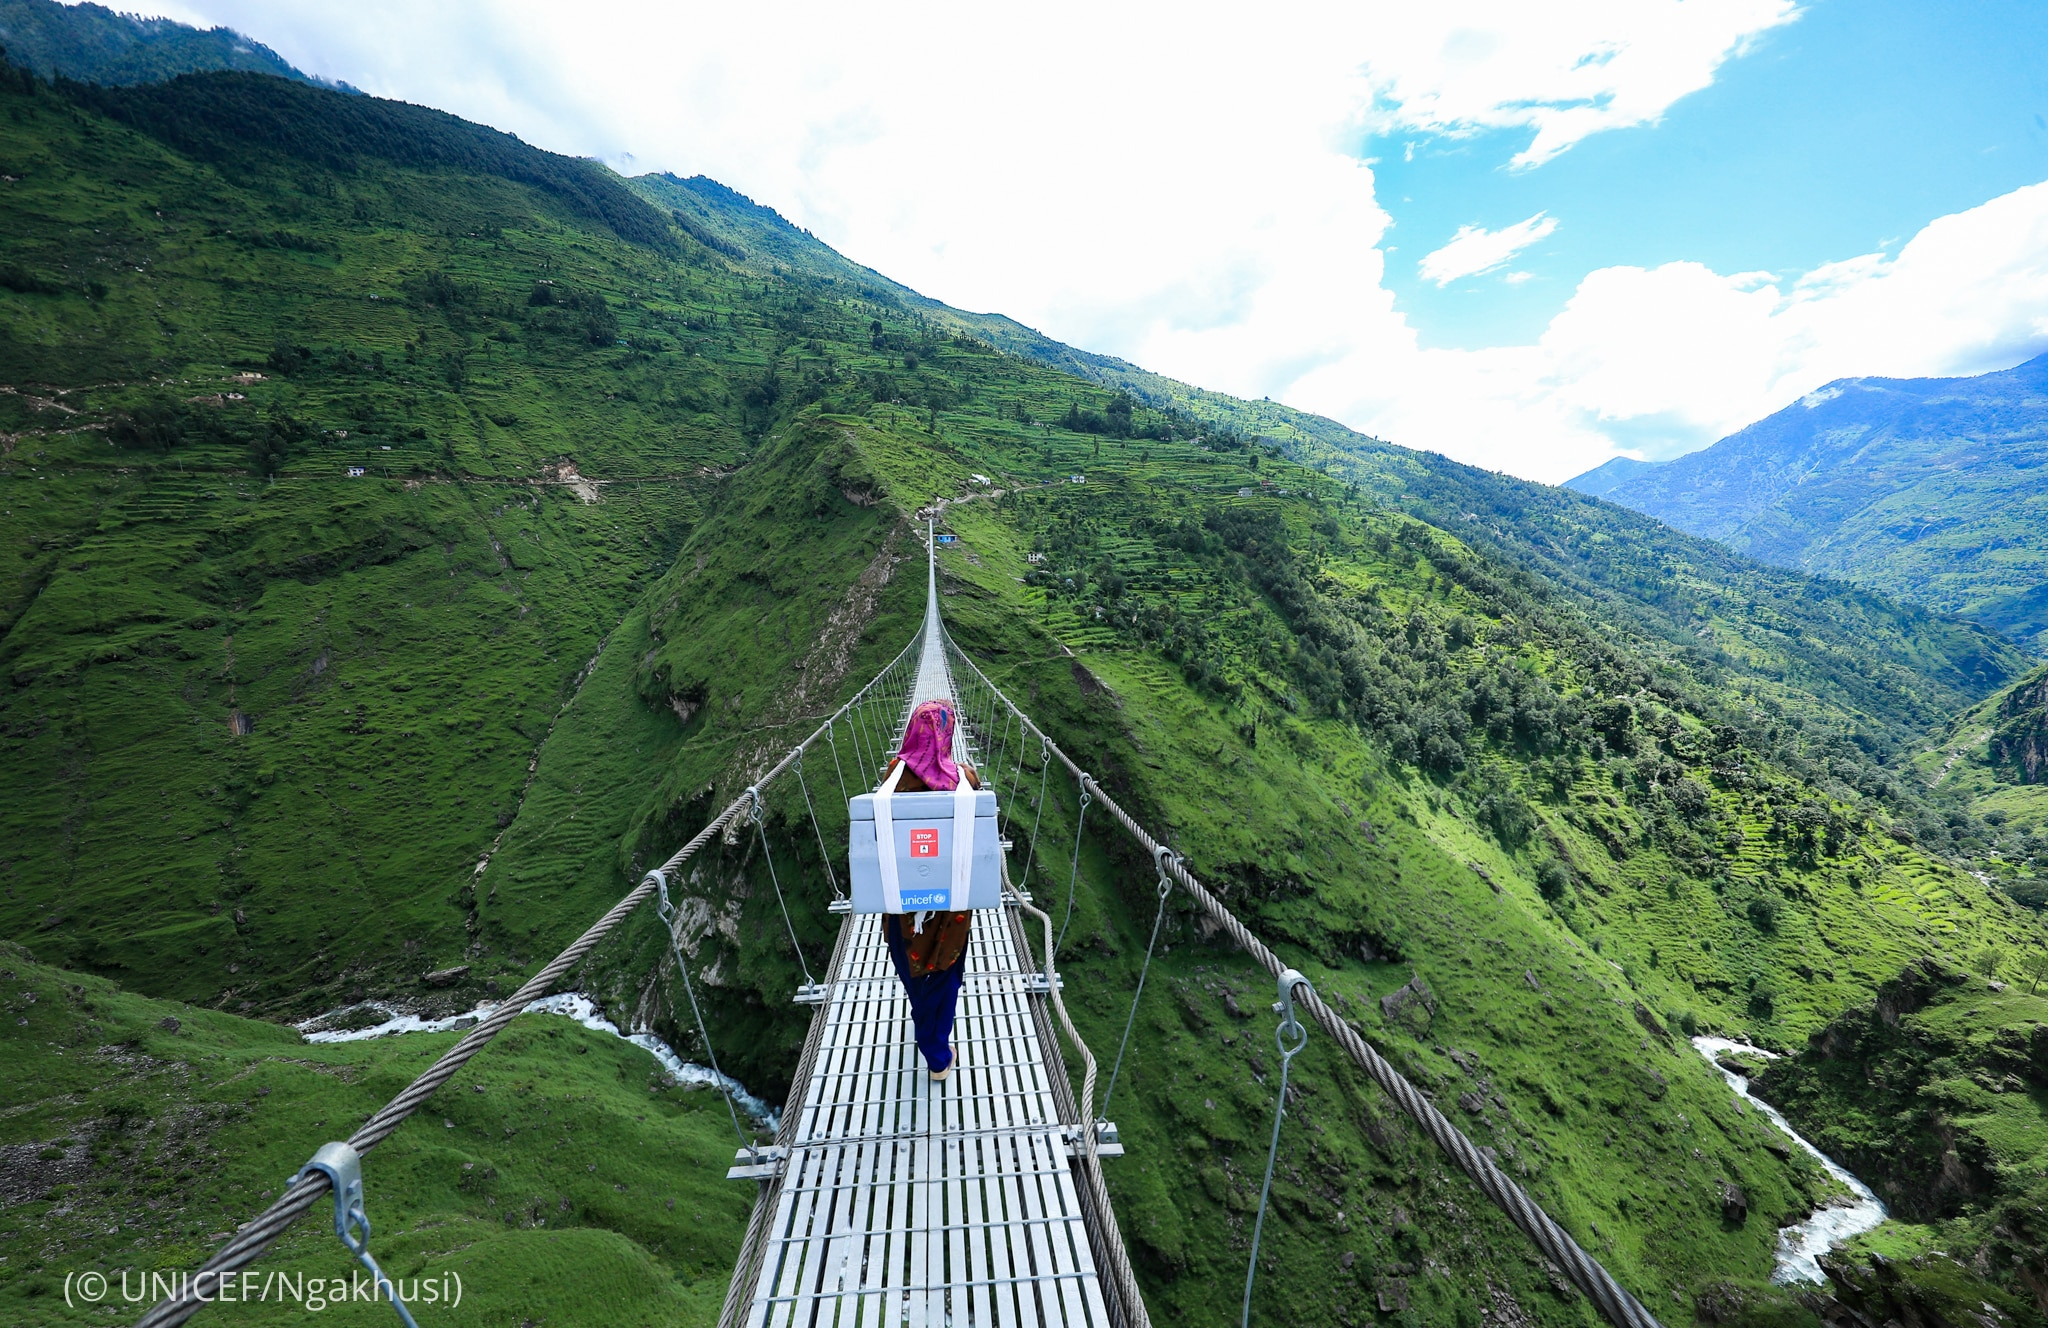 Woman with box strapped to her back walking across narrow bridge in mountains (© UNICEF/Ngakhusi)